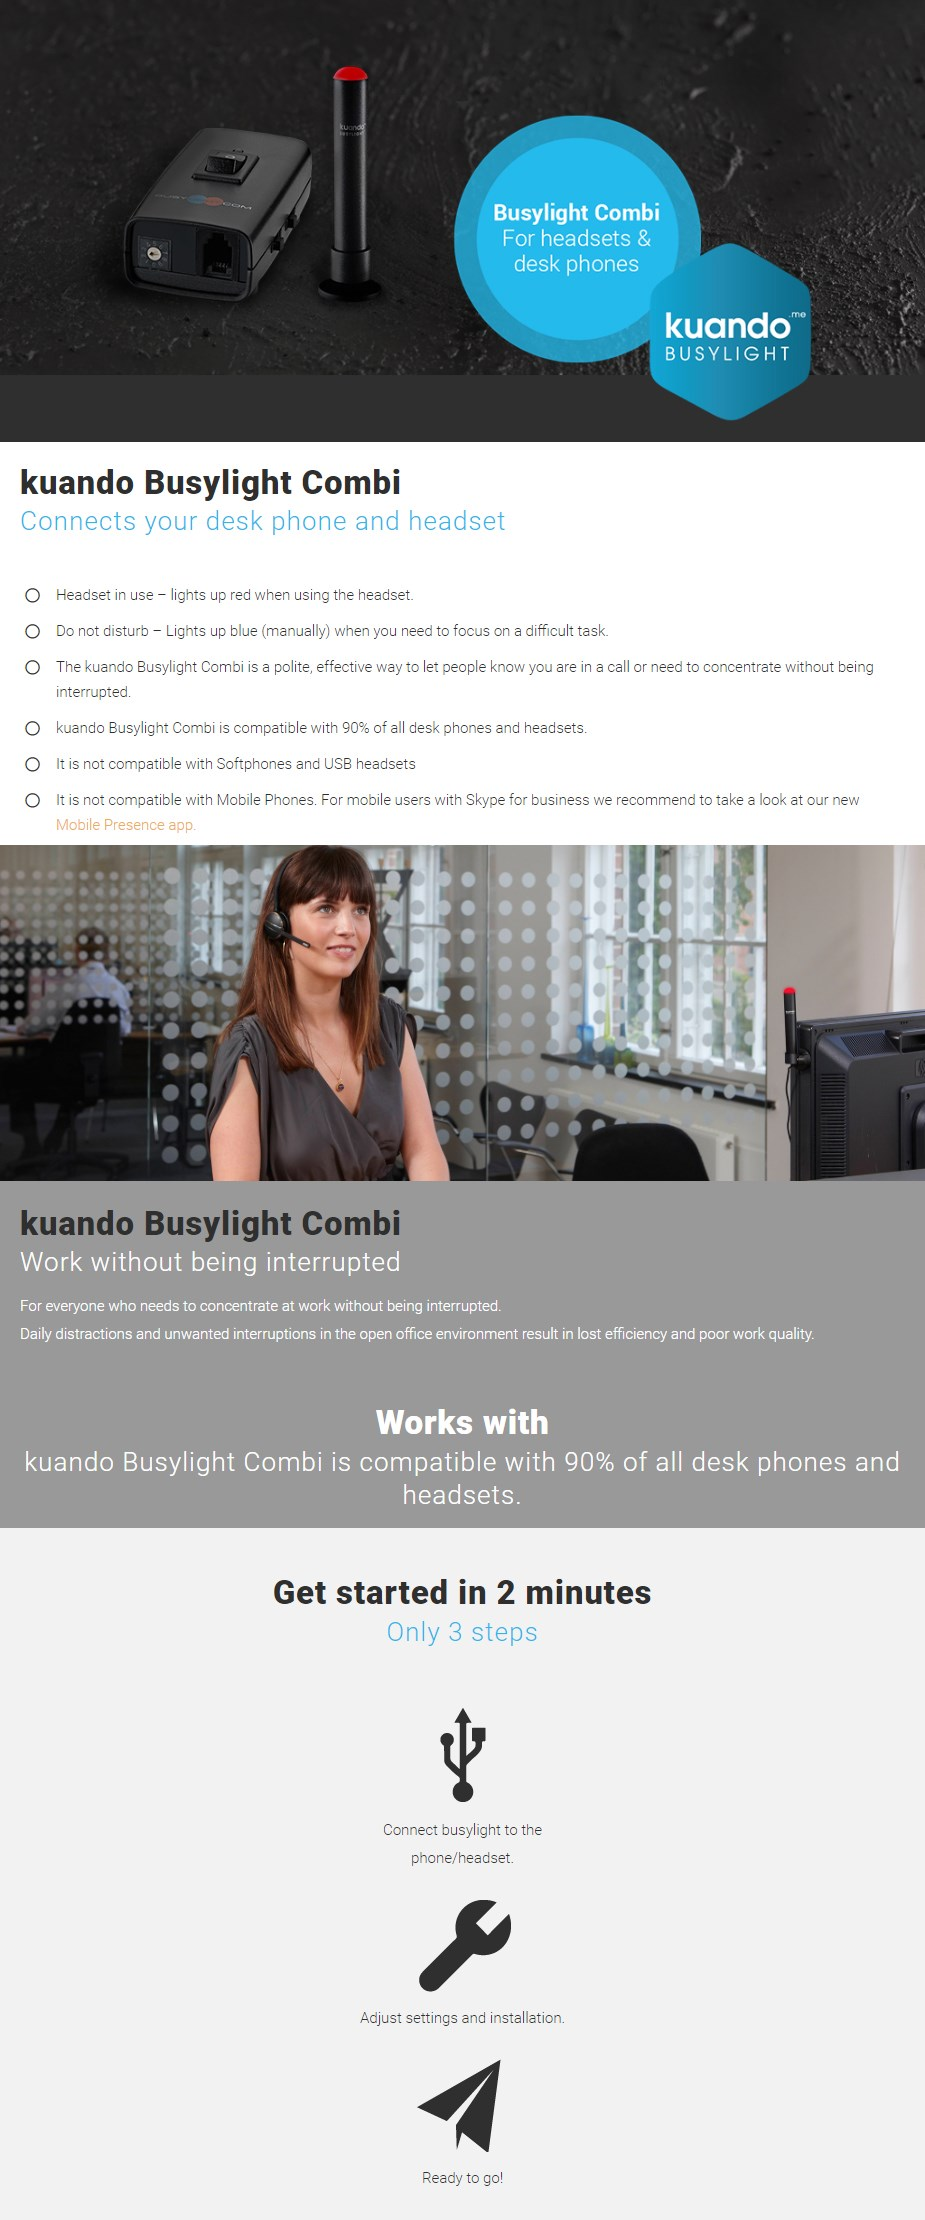 Kuando Busylight Combi - Overview 1